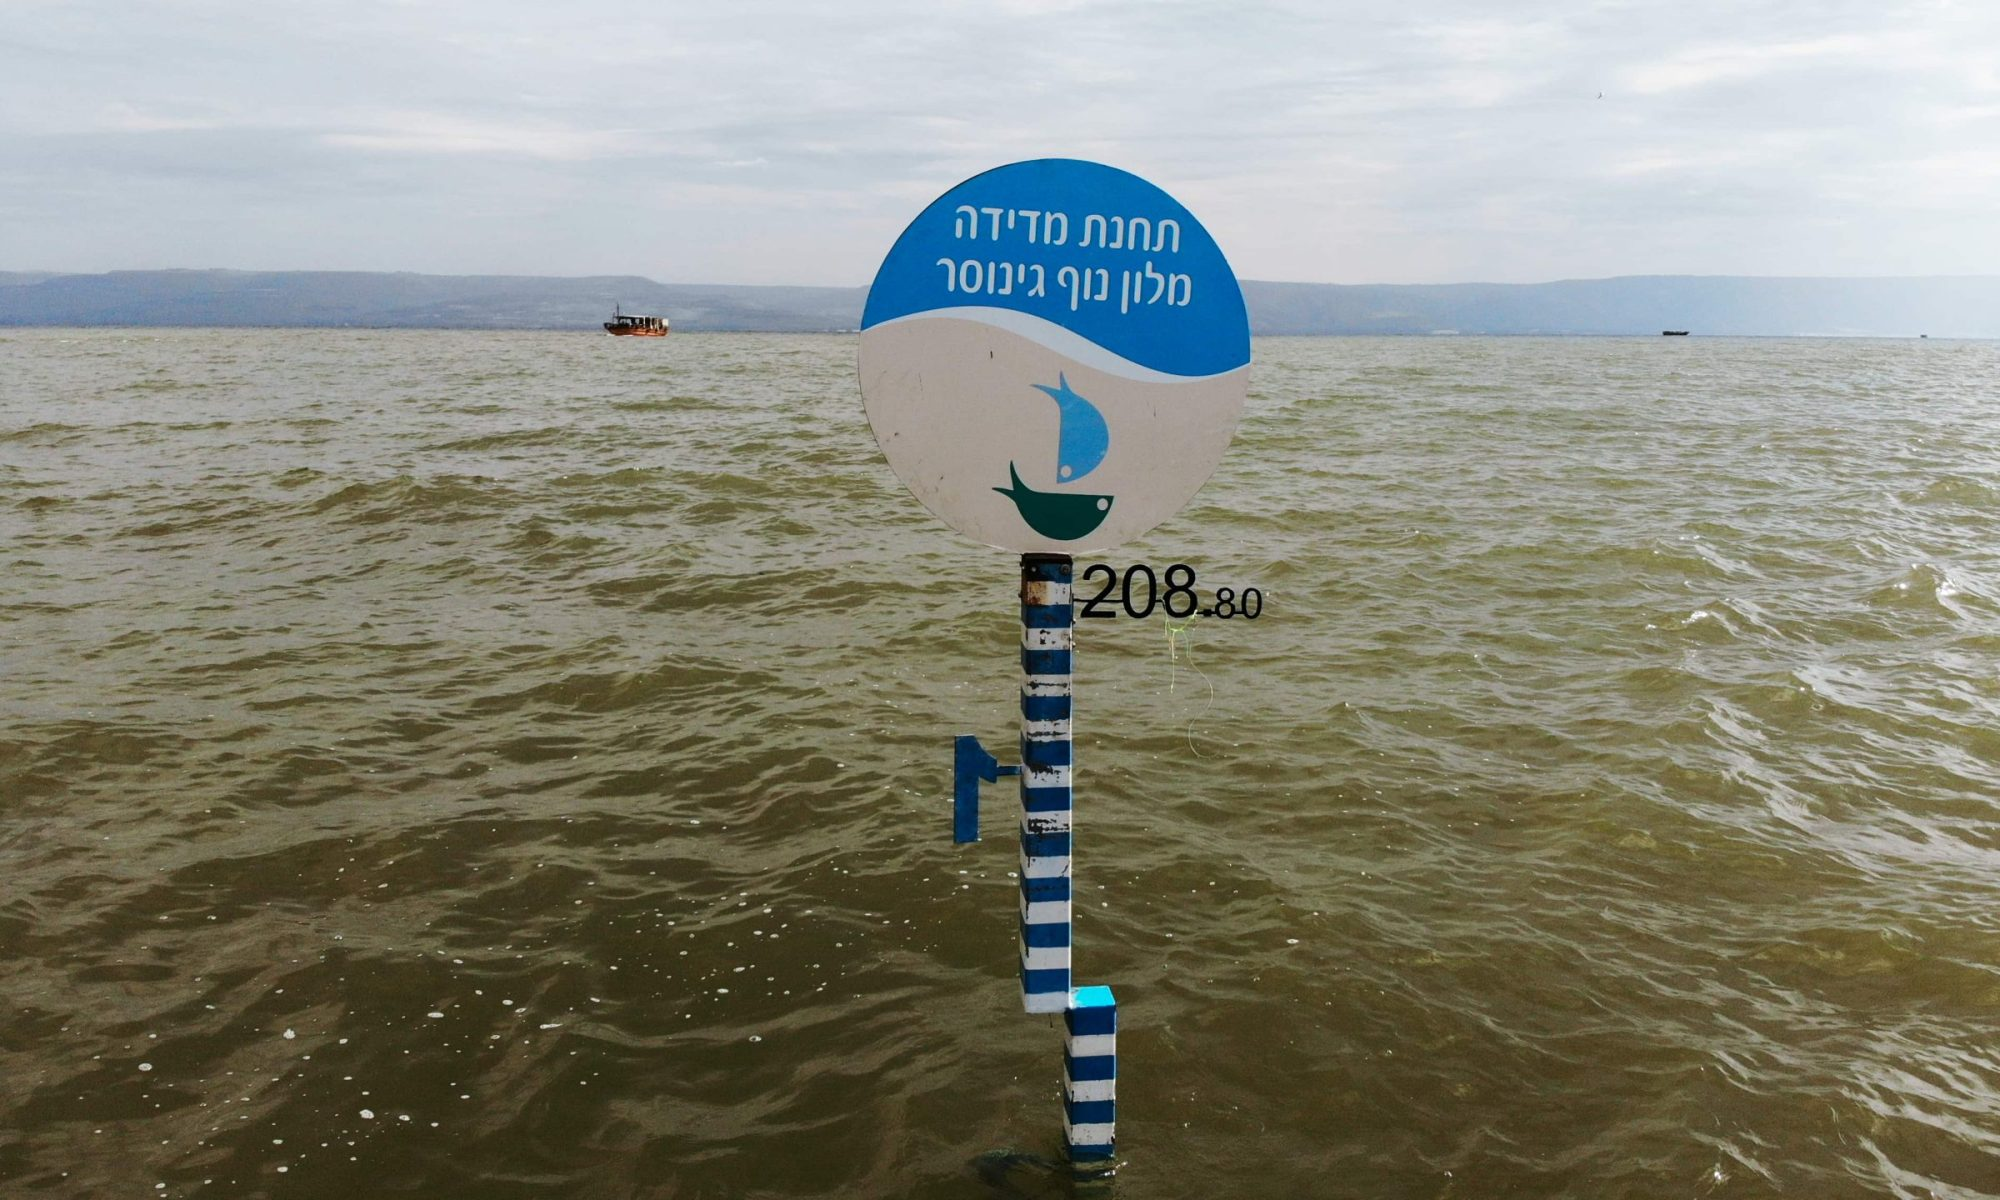 Kinneret level indicator